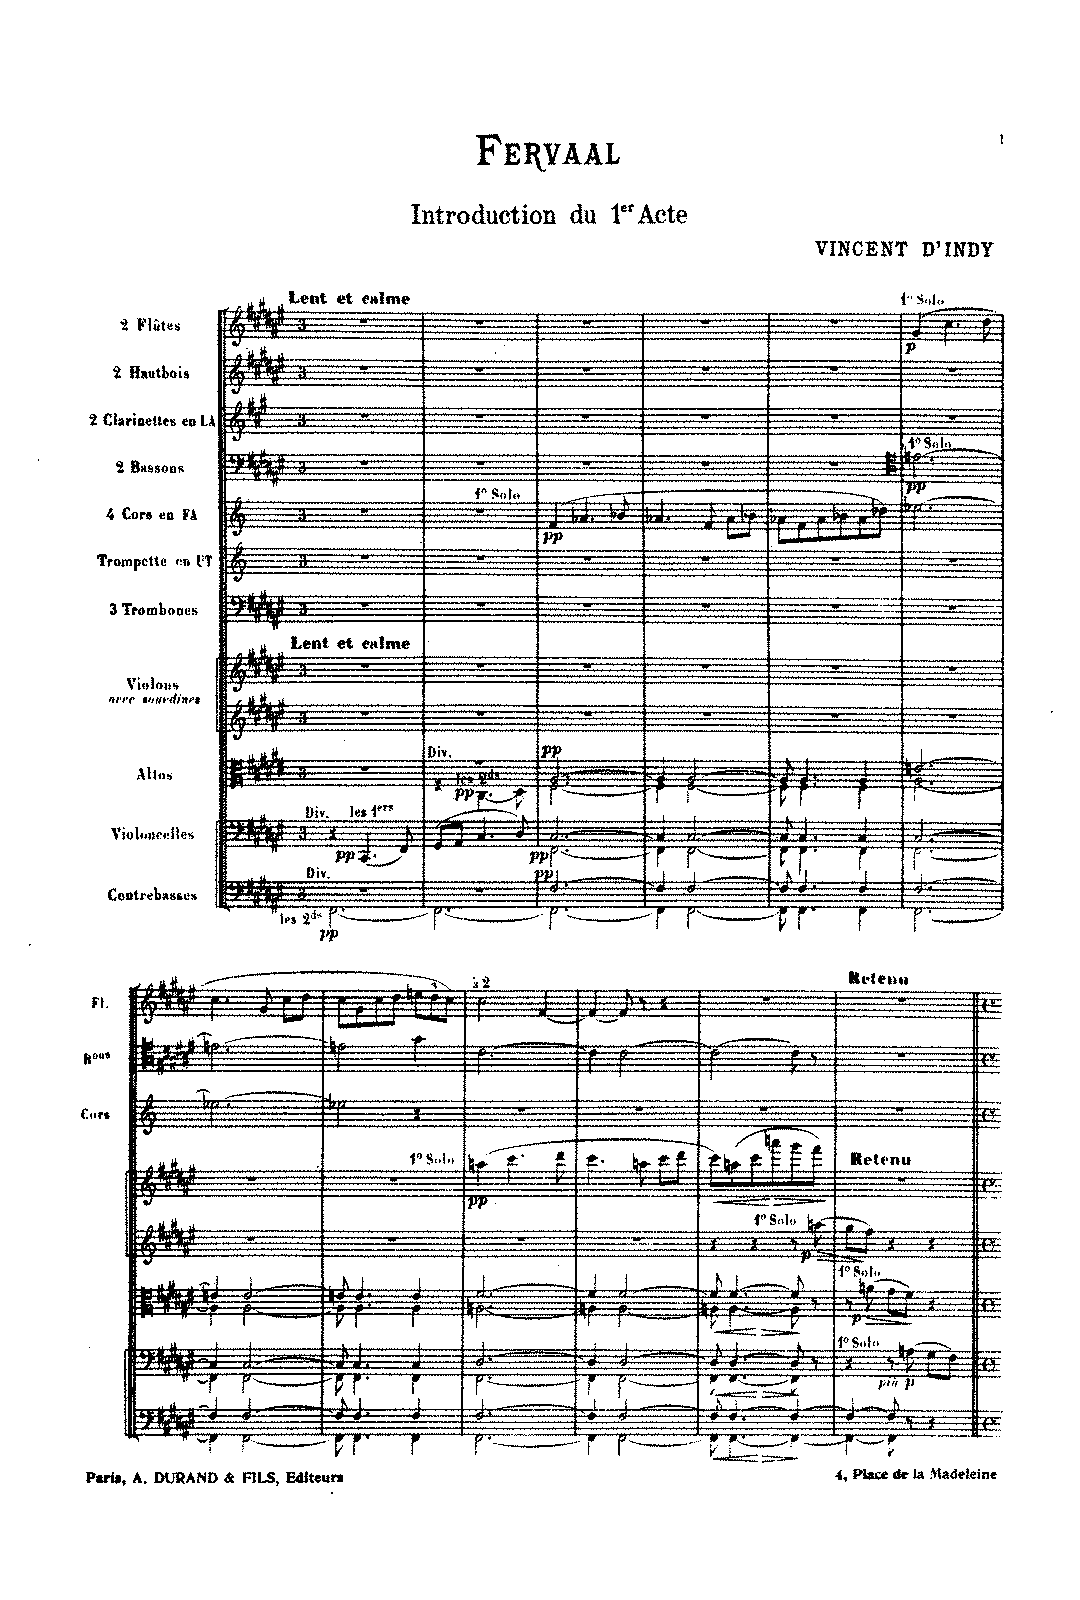 D'Indy - Fervaal Overture (orch. score).pdf